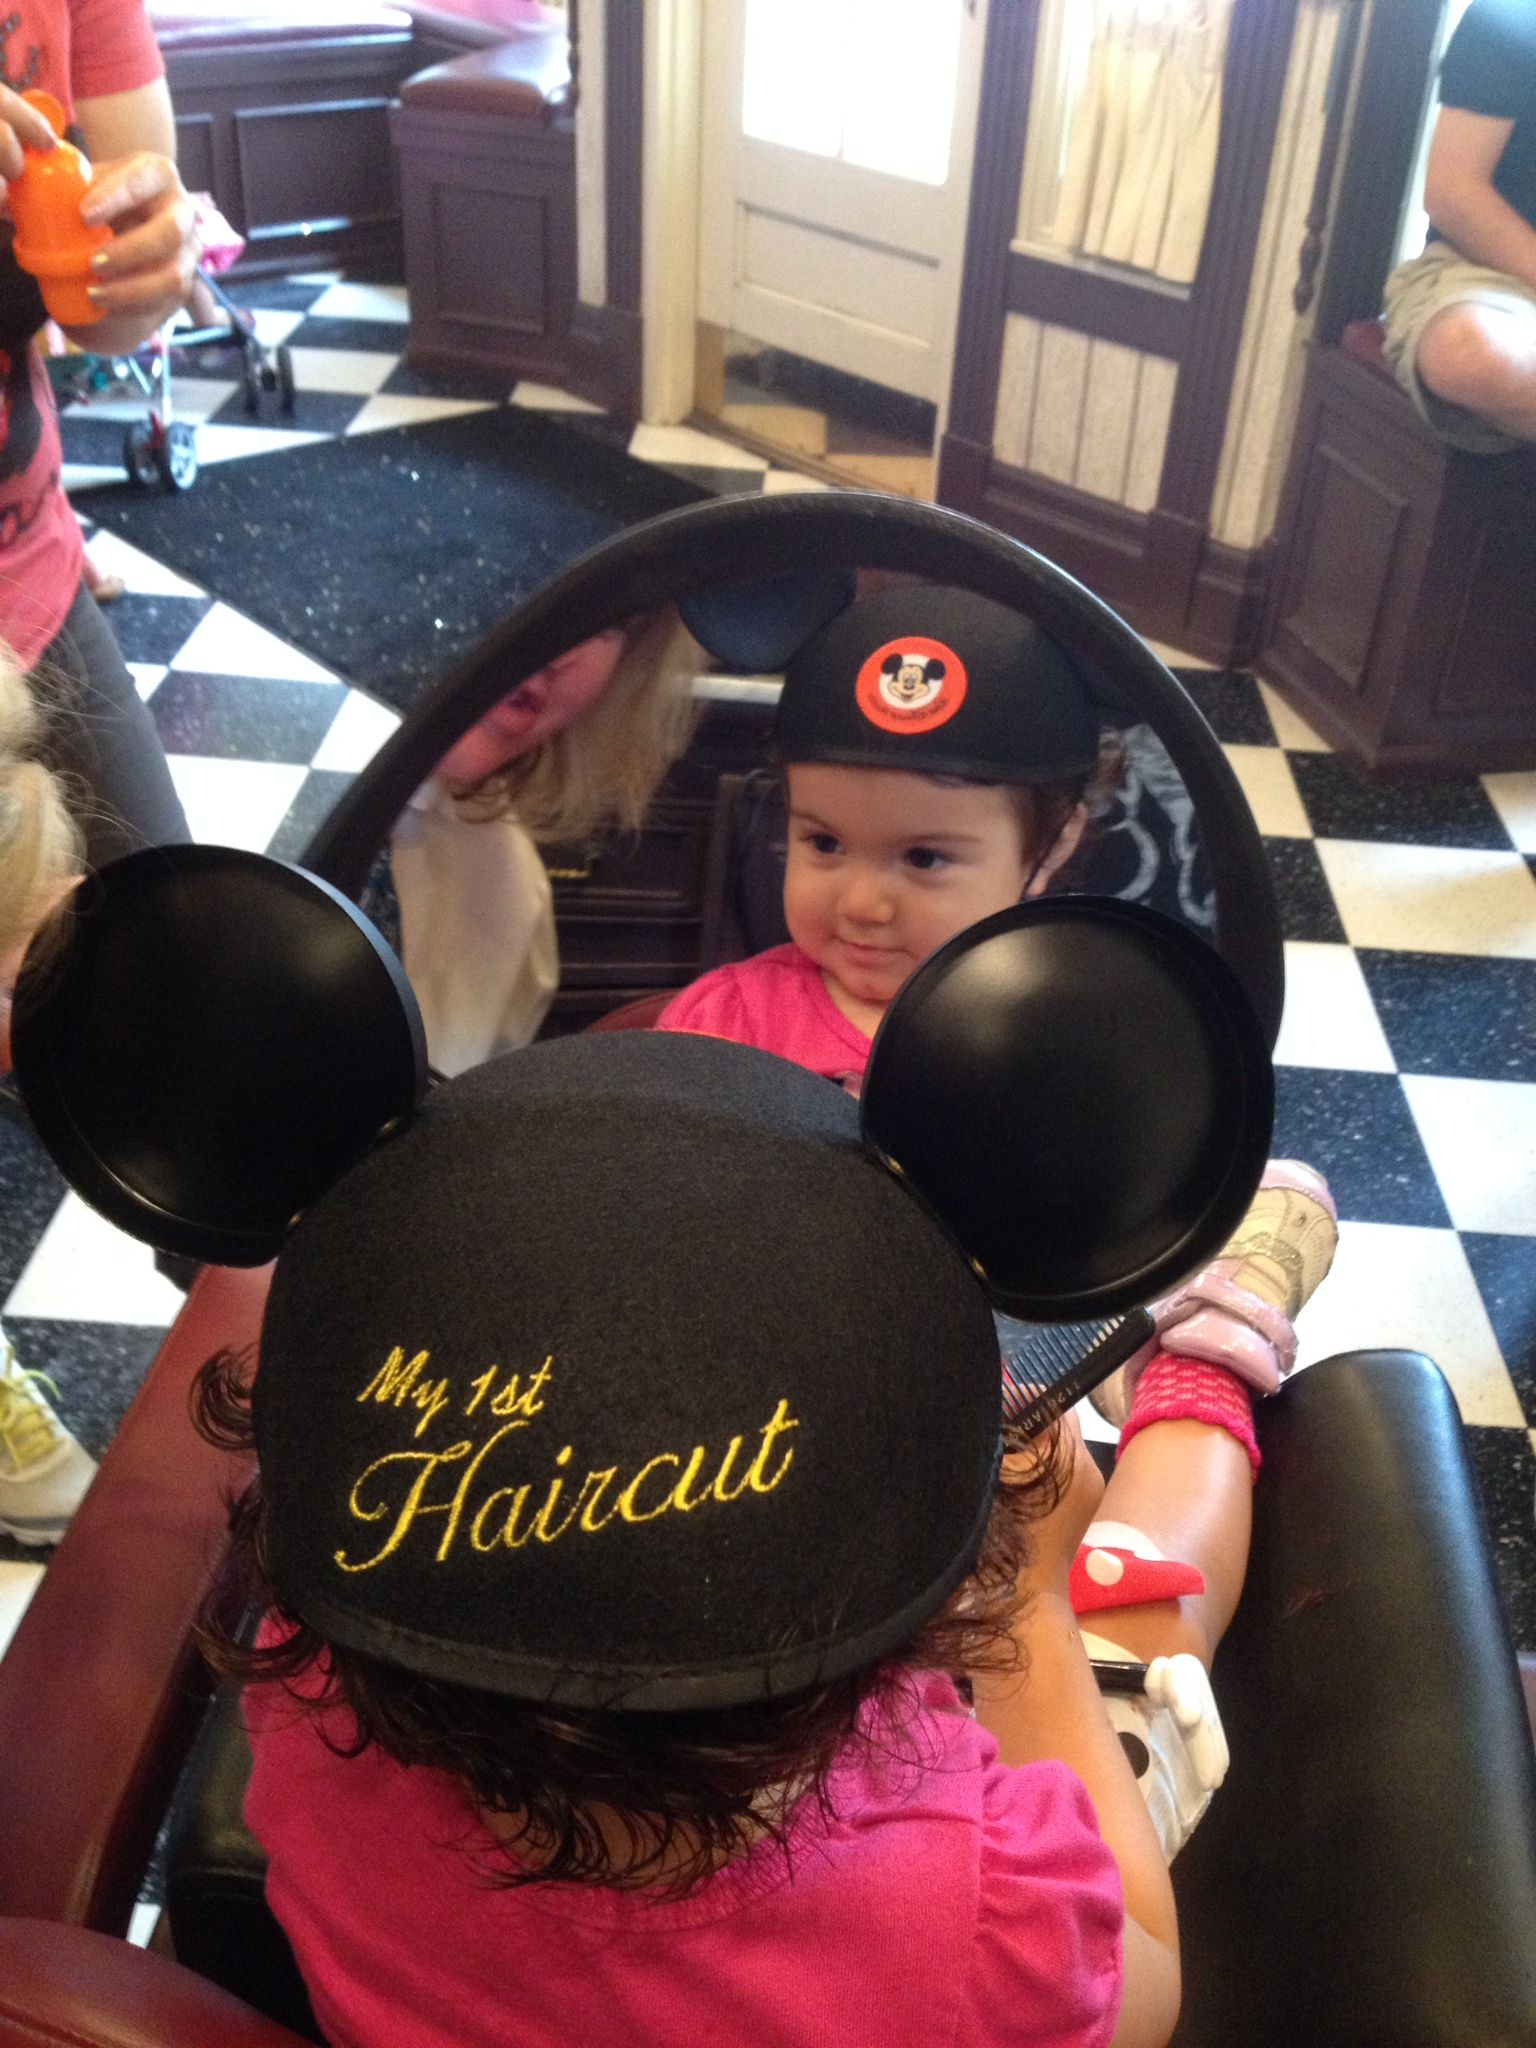 My Babys First Haircut A Great Experience In The Magic Kingdom